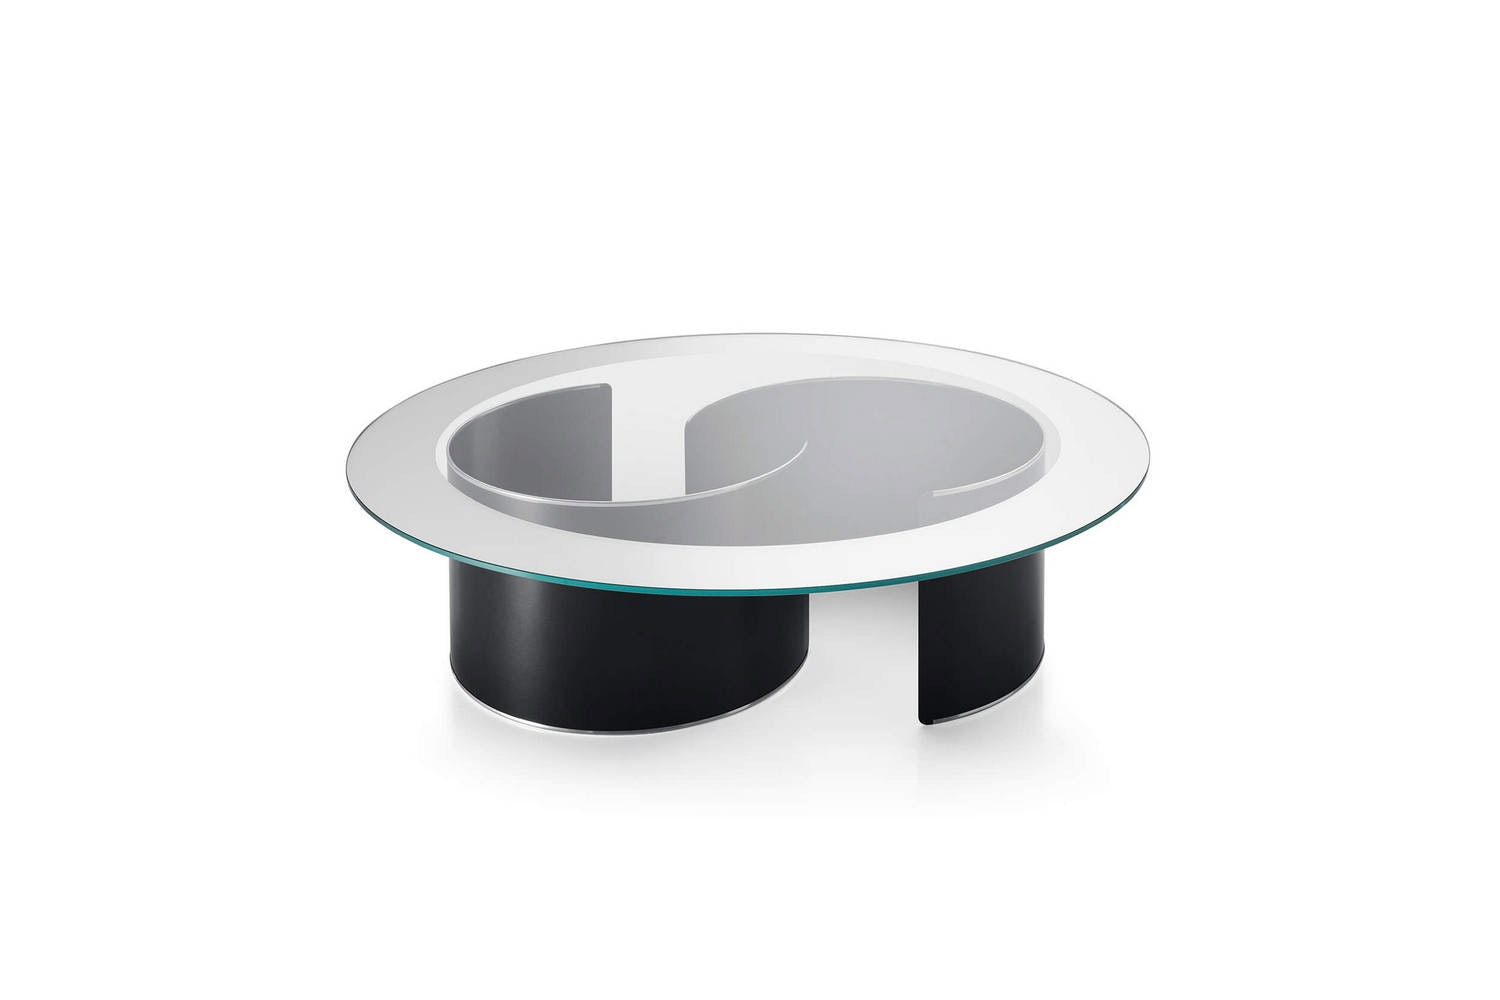 Fascia Specchiata Coffee Table by Luigi Caccia Dominioni for Azucena